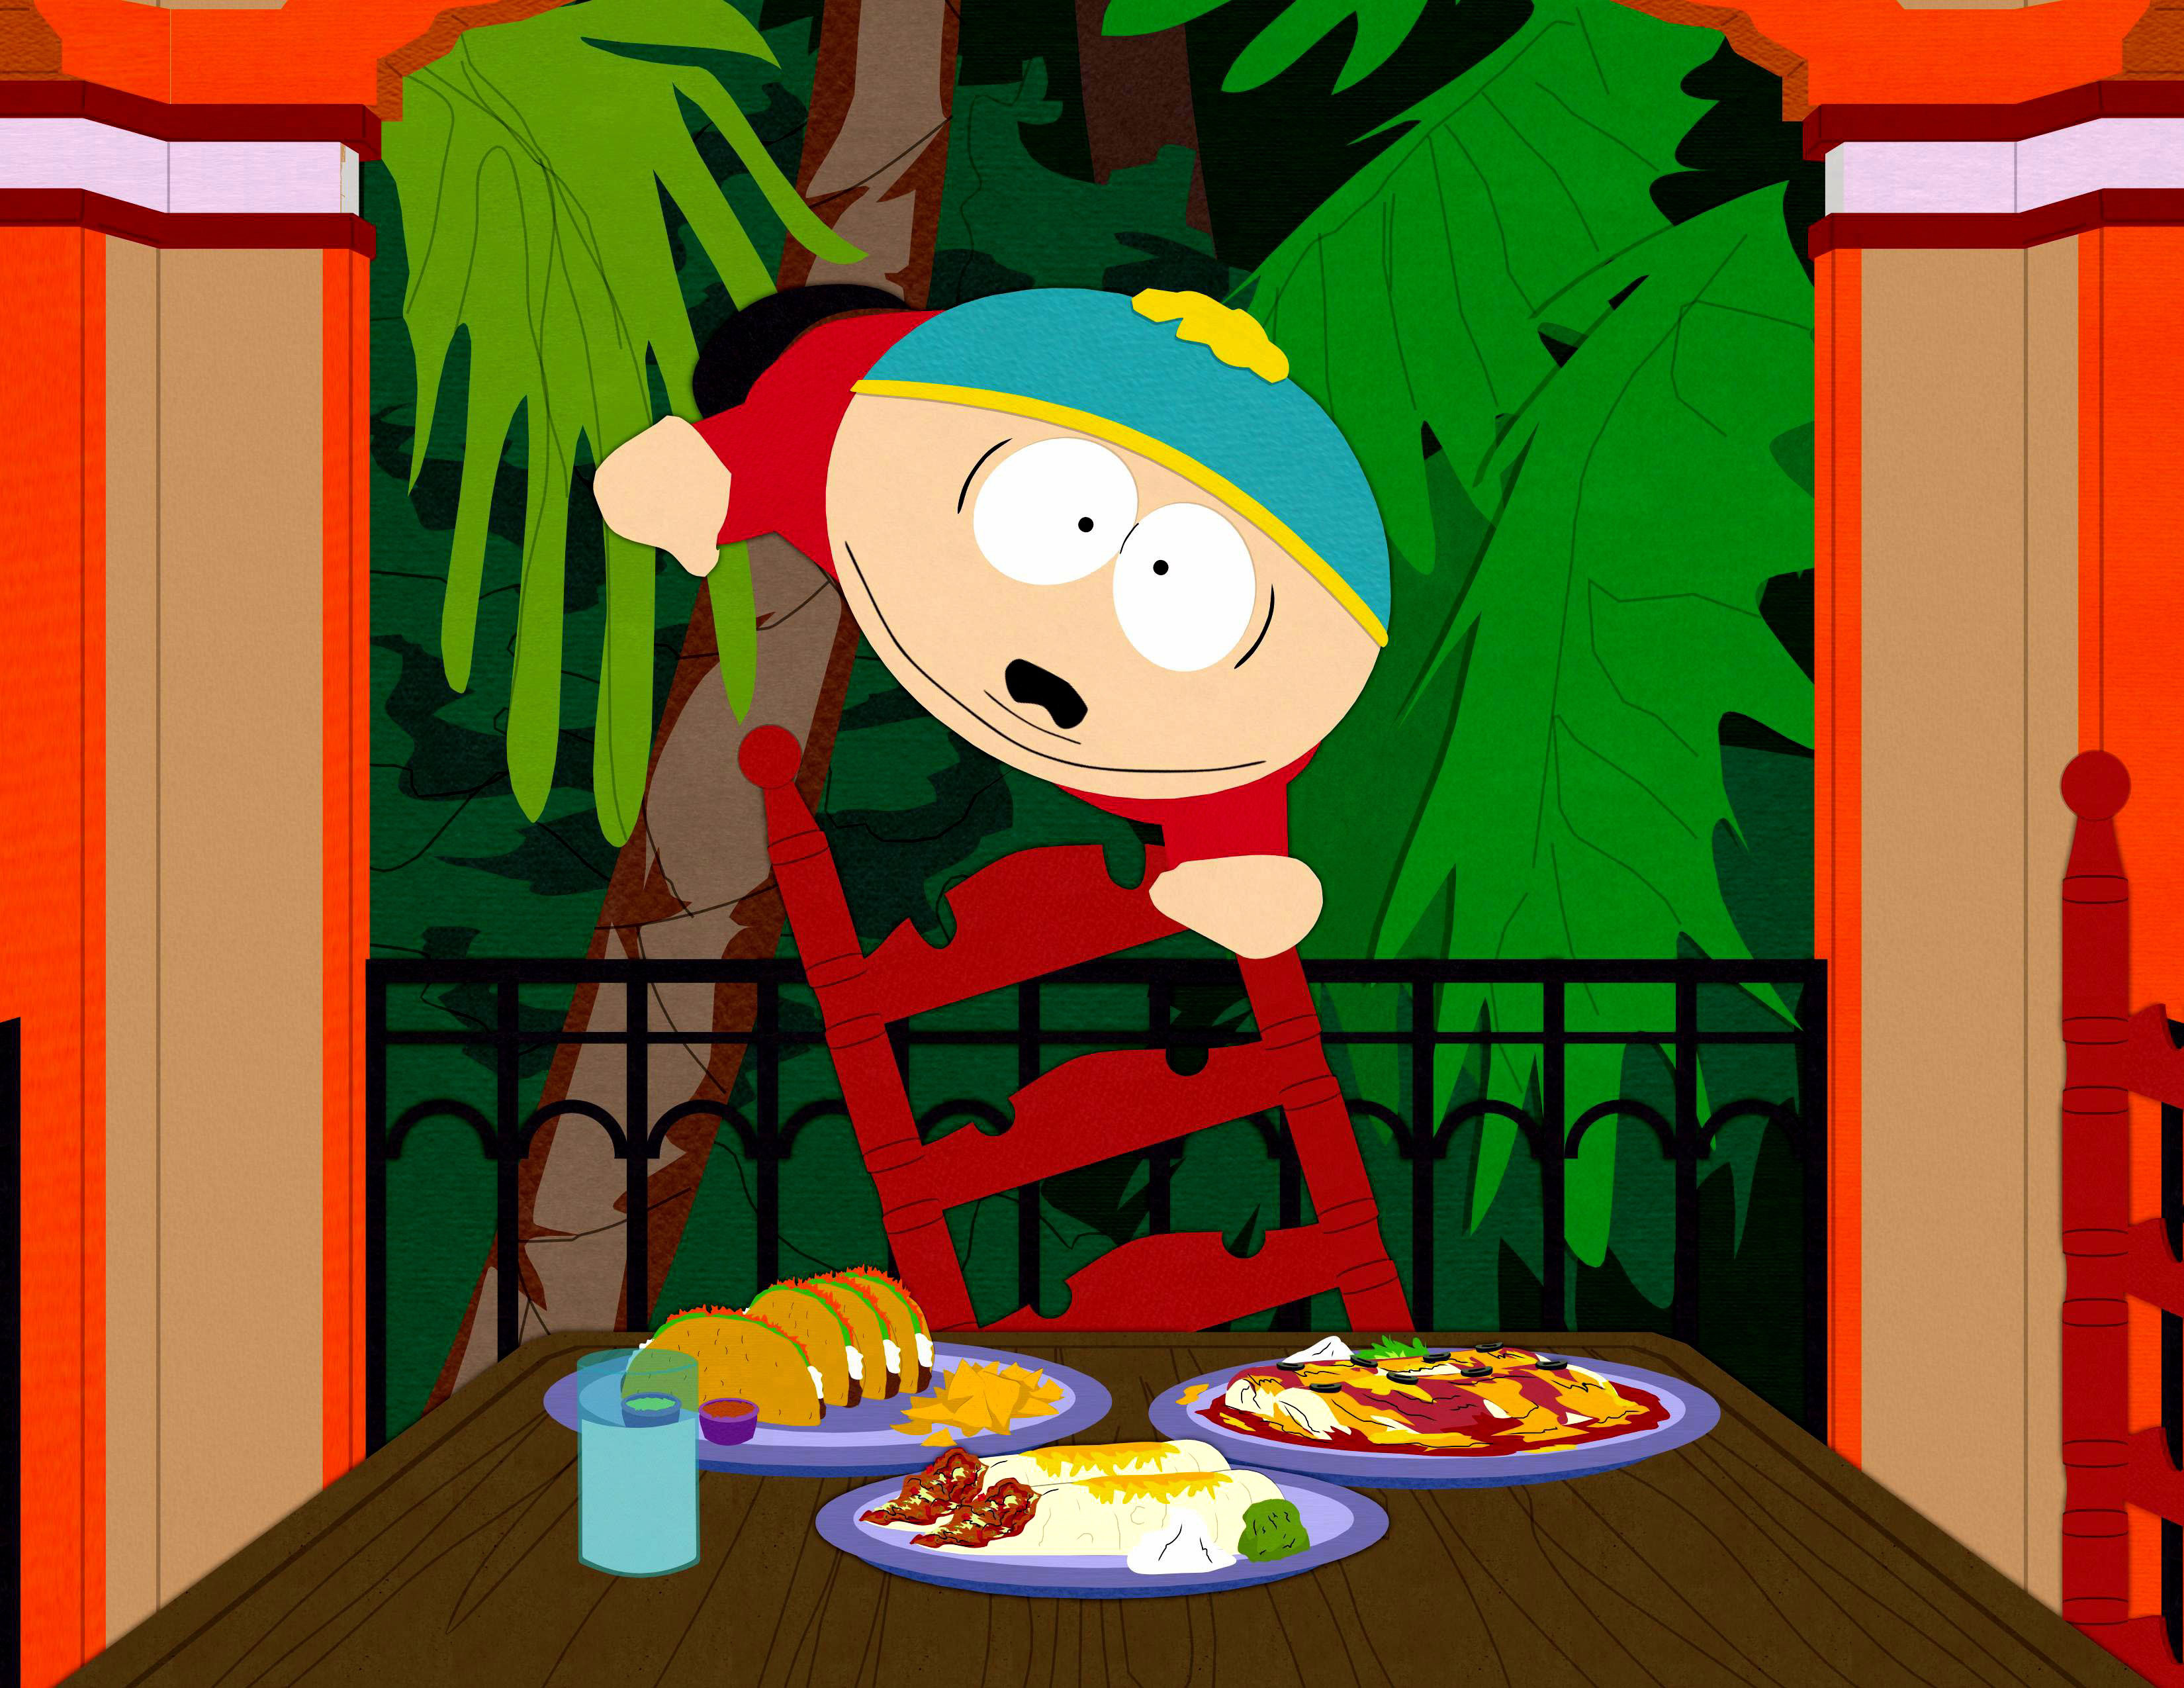 cartman s seven most evil acts sick chirpse